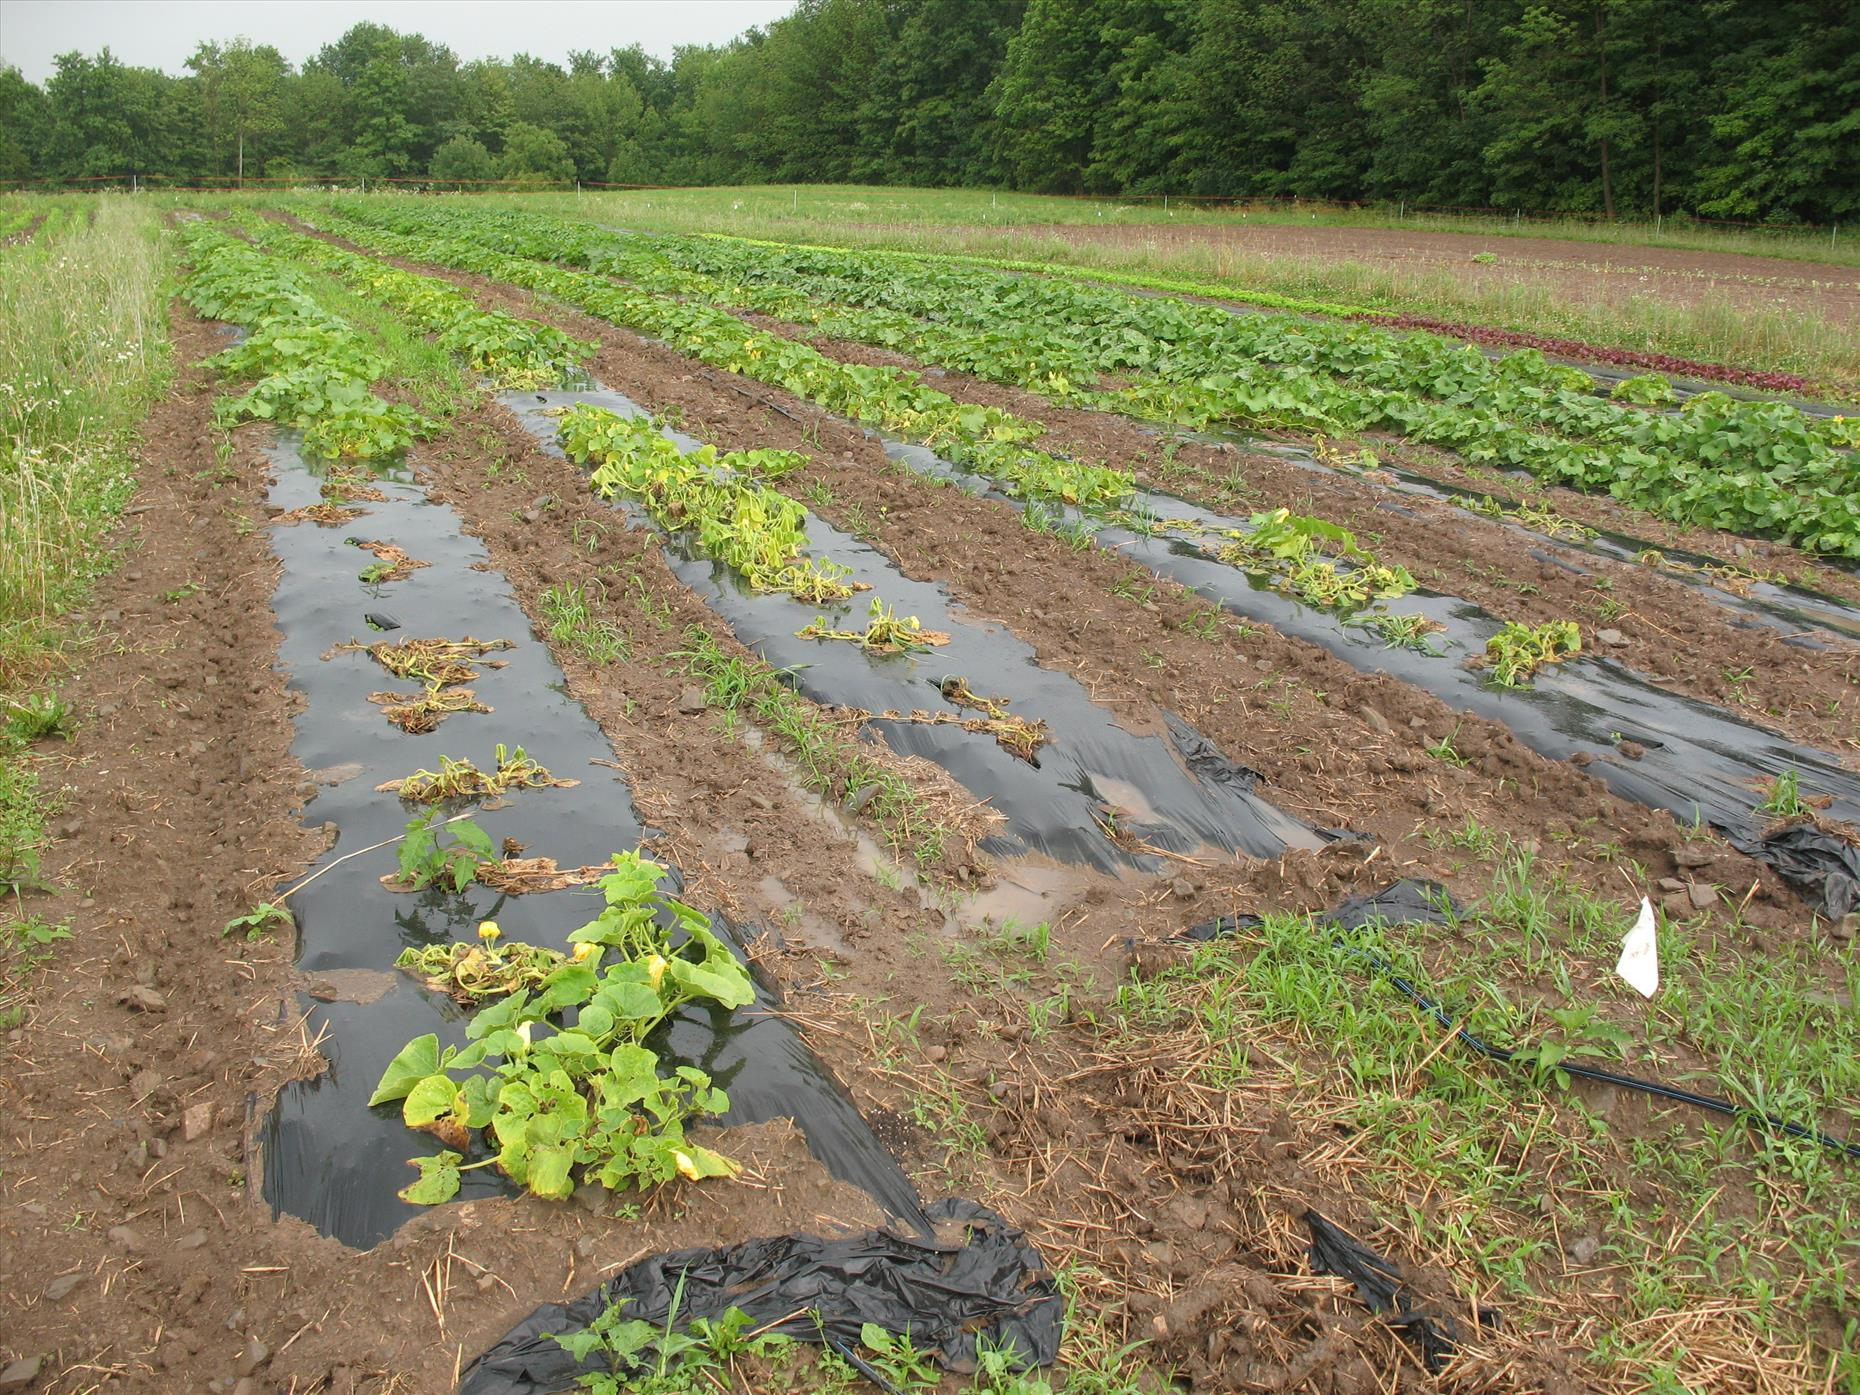 Poor winter squash... this section flooded and spread some disease to these plants (causing them to die)